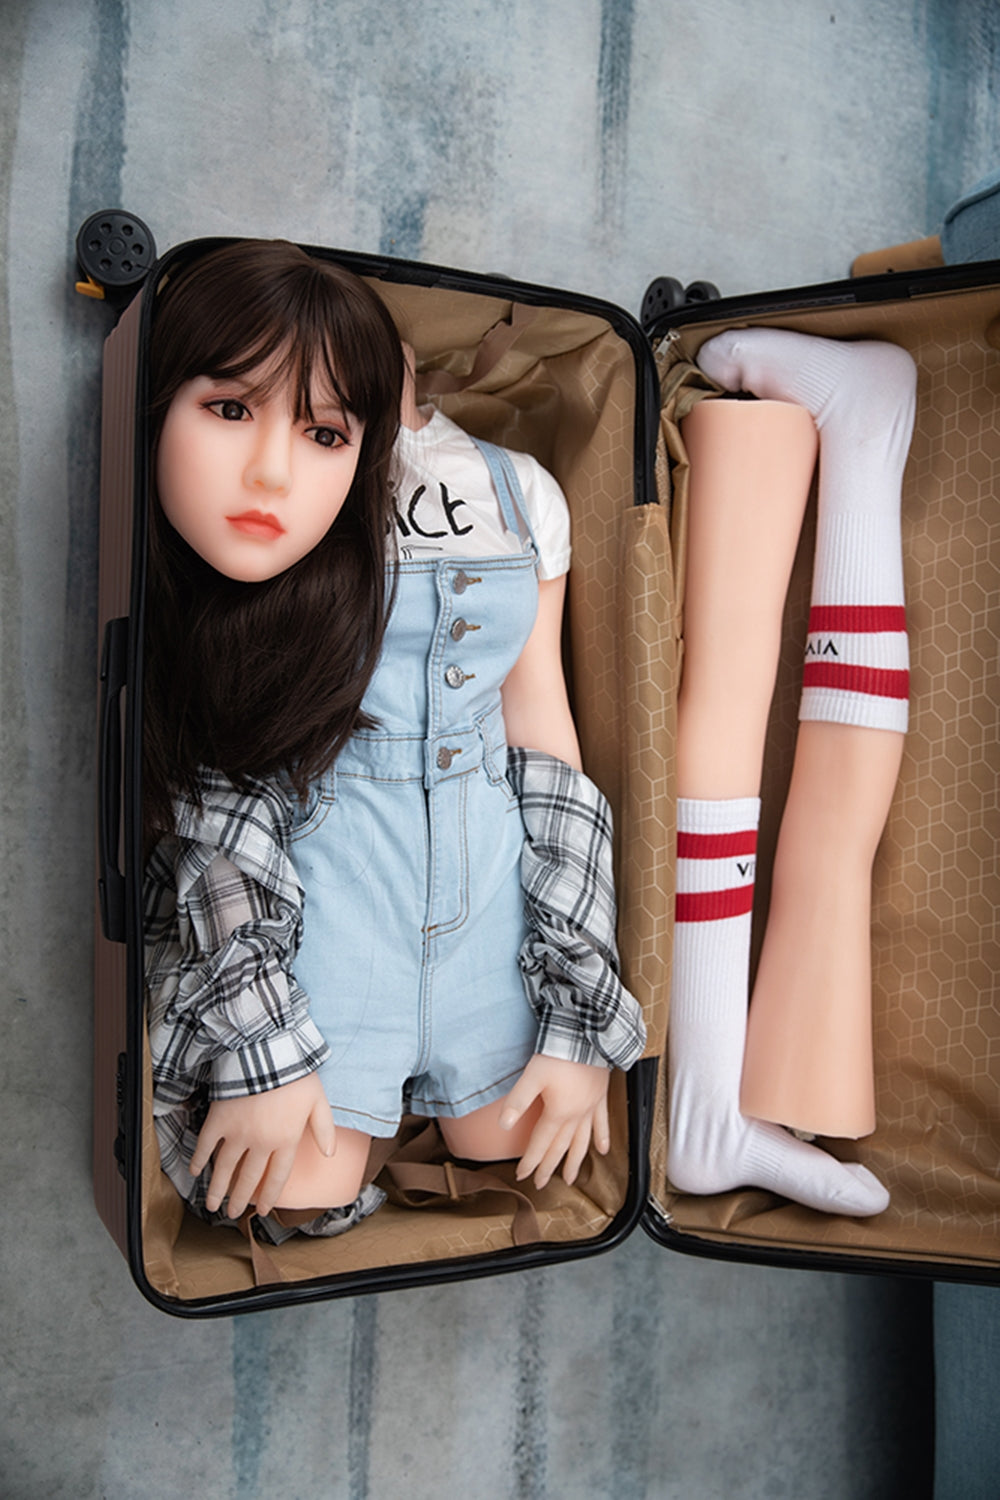 portable sex doll